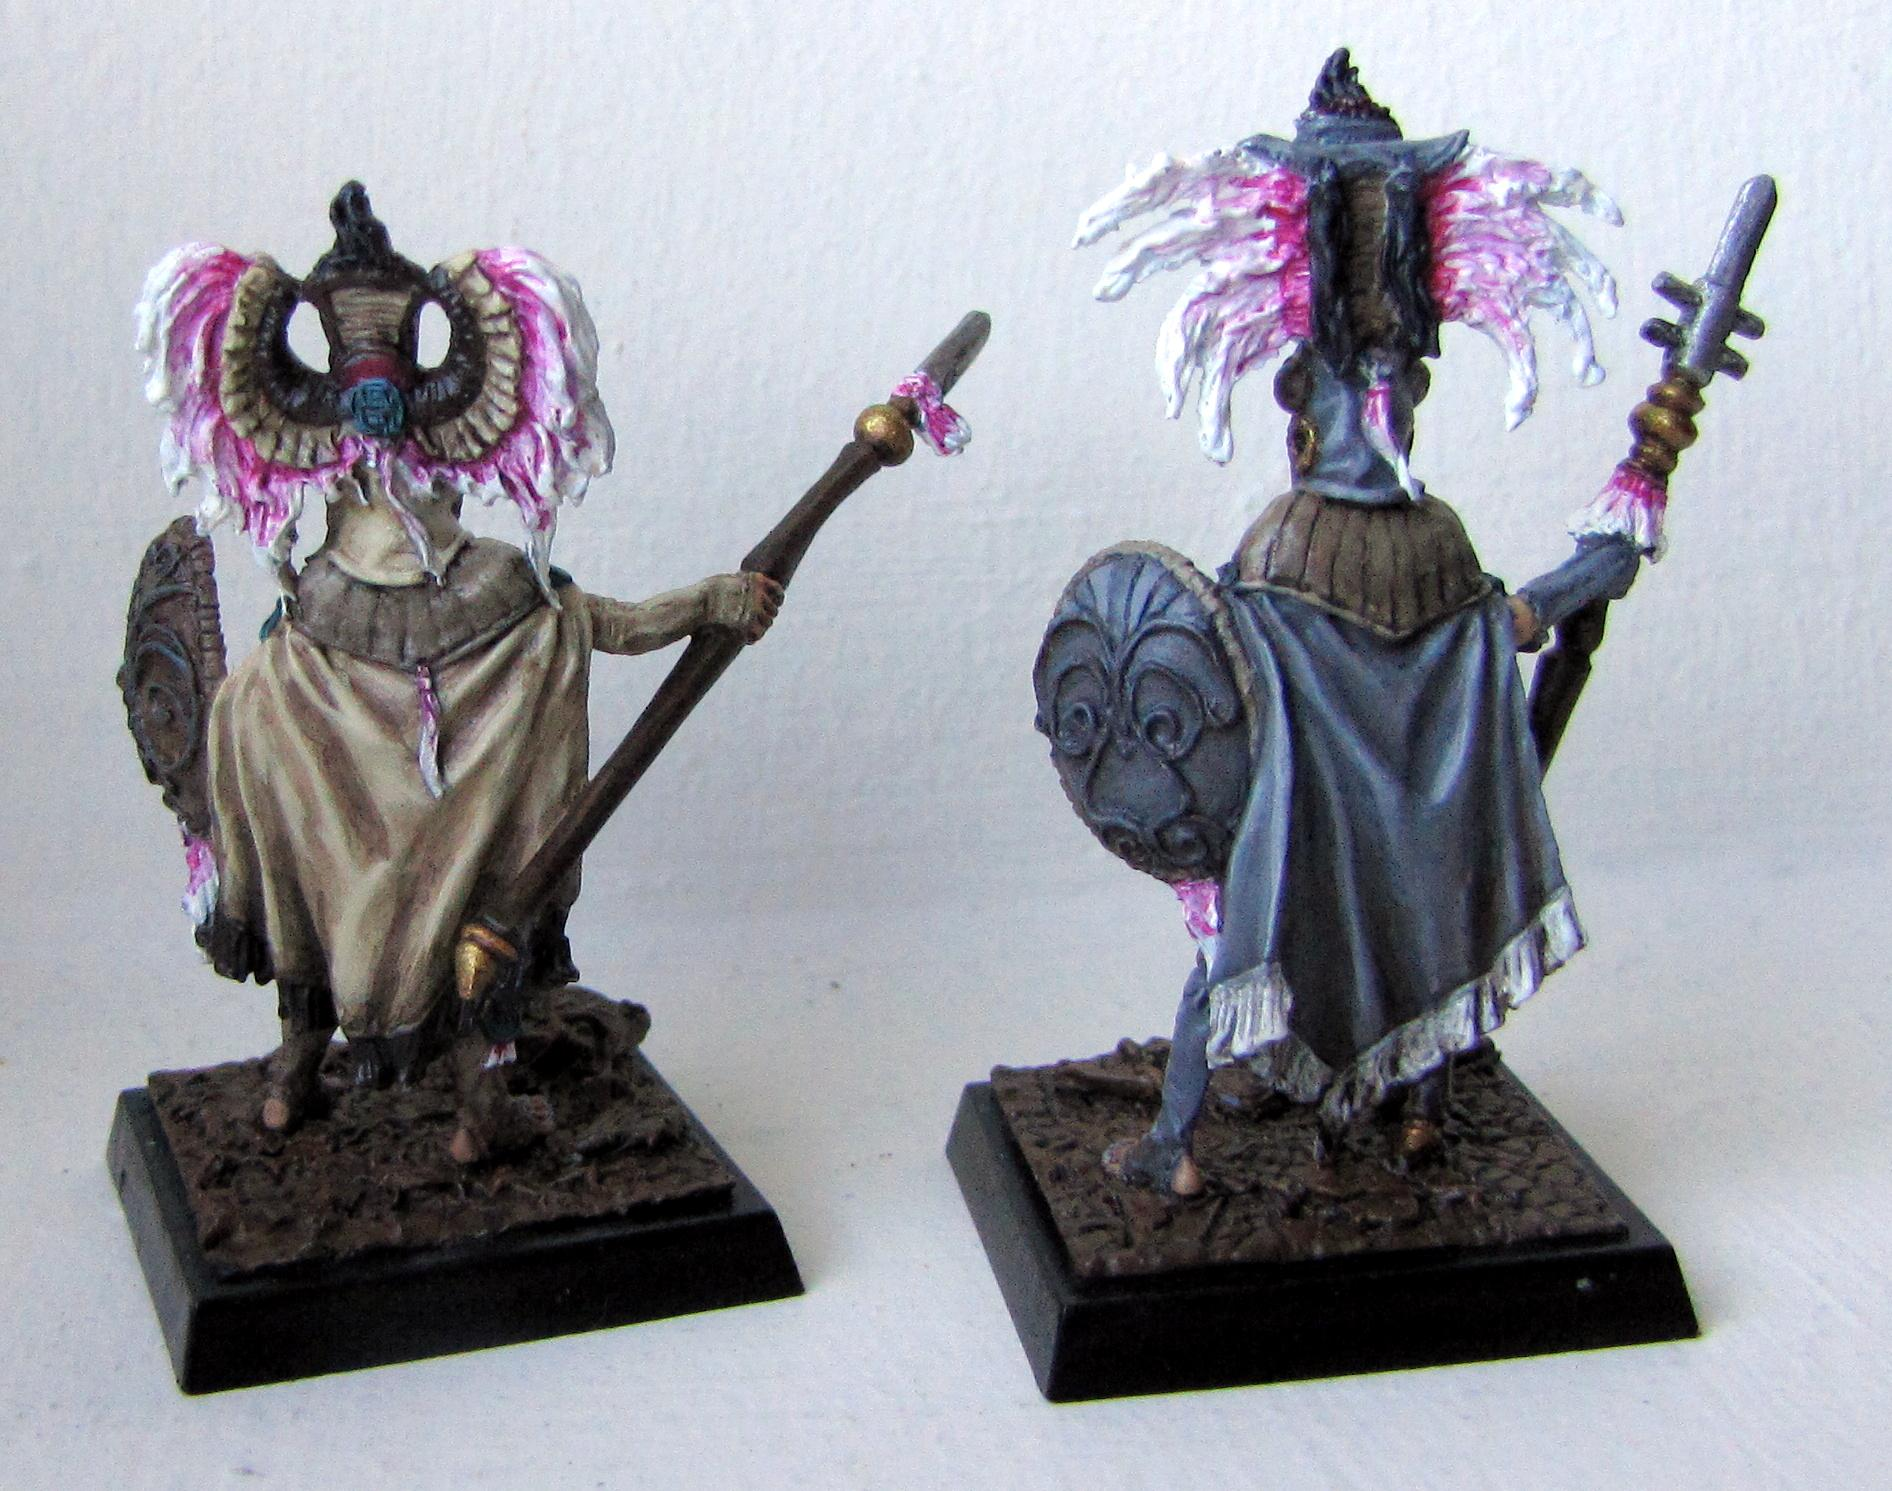 Amazon, Amazons, Freebooter Miniatures, Freebooters, Freebooters Fate, Pirates, Temple Guard, Templeguard, Warhammer Fantasy